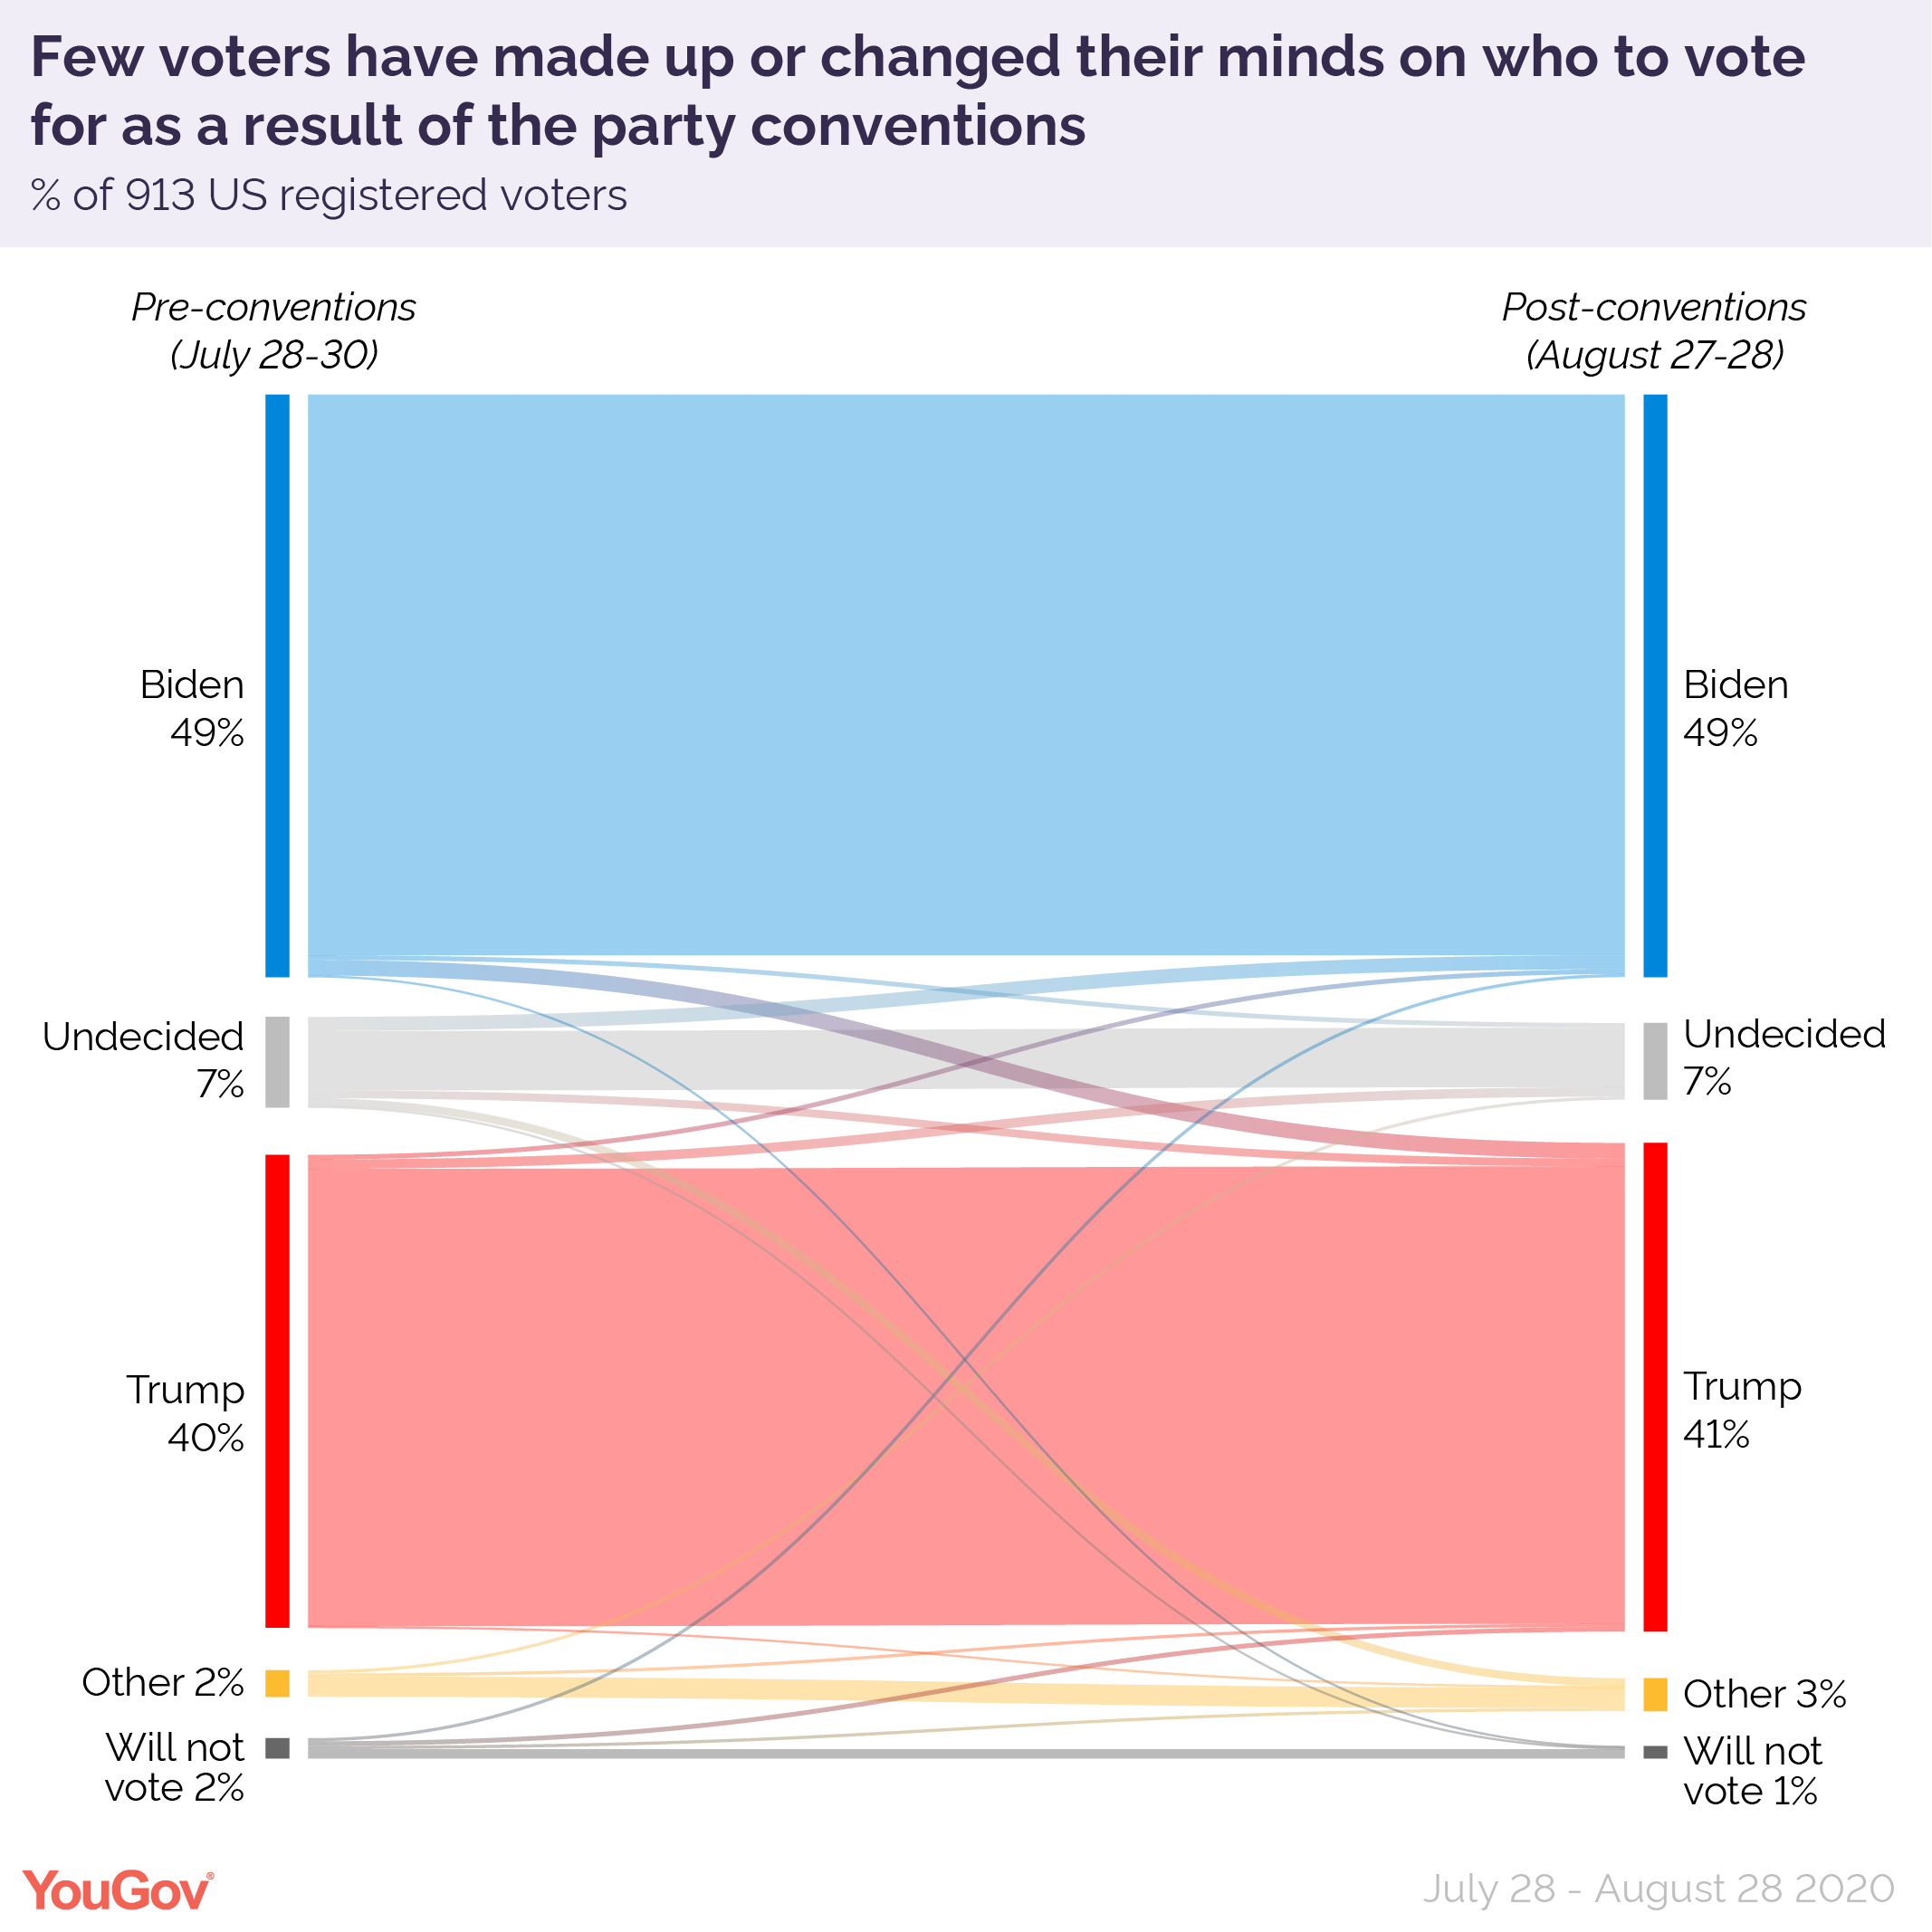 Few voters have made up or change their minds on who to vote for as a result of the party conventions